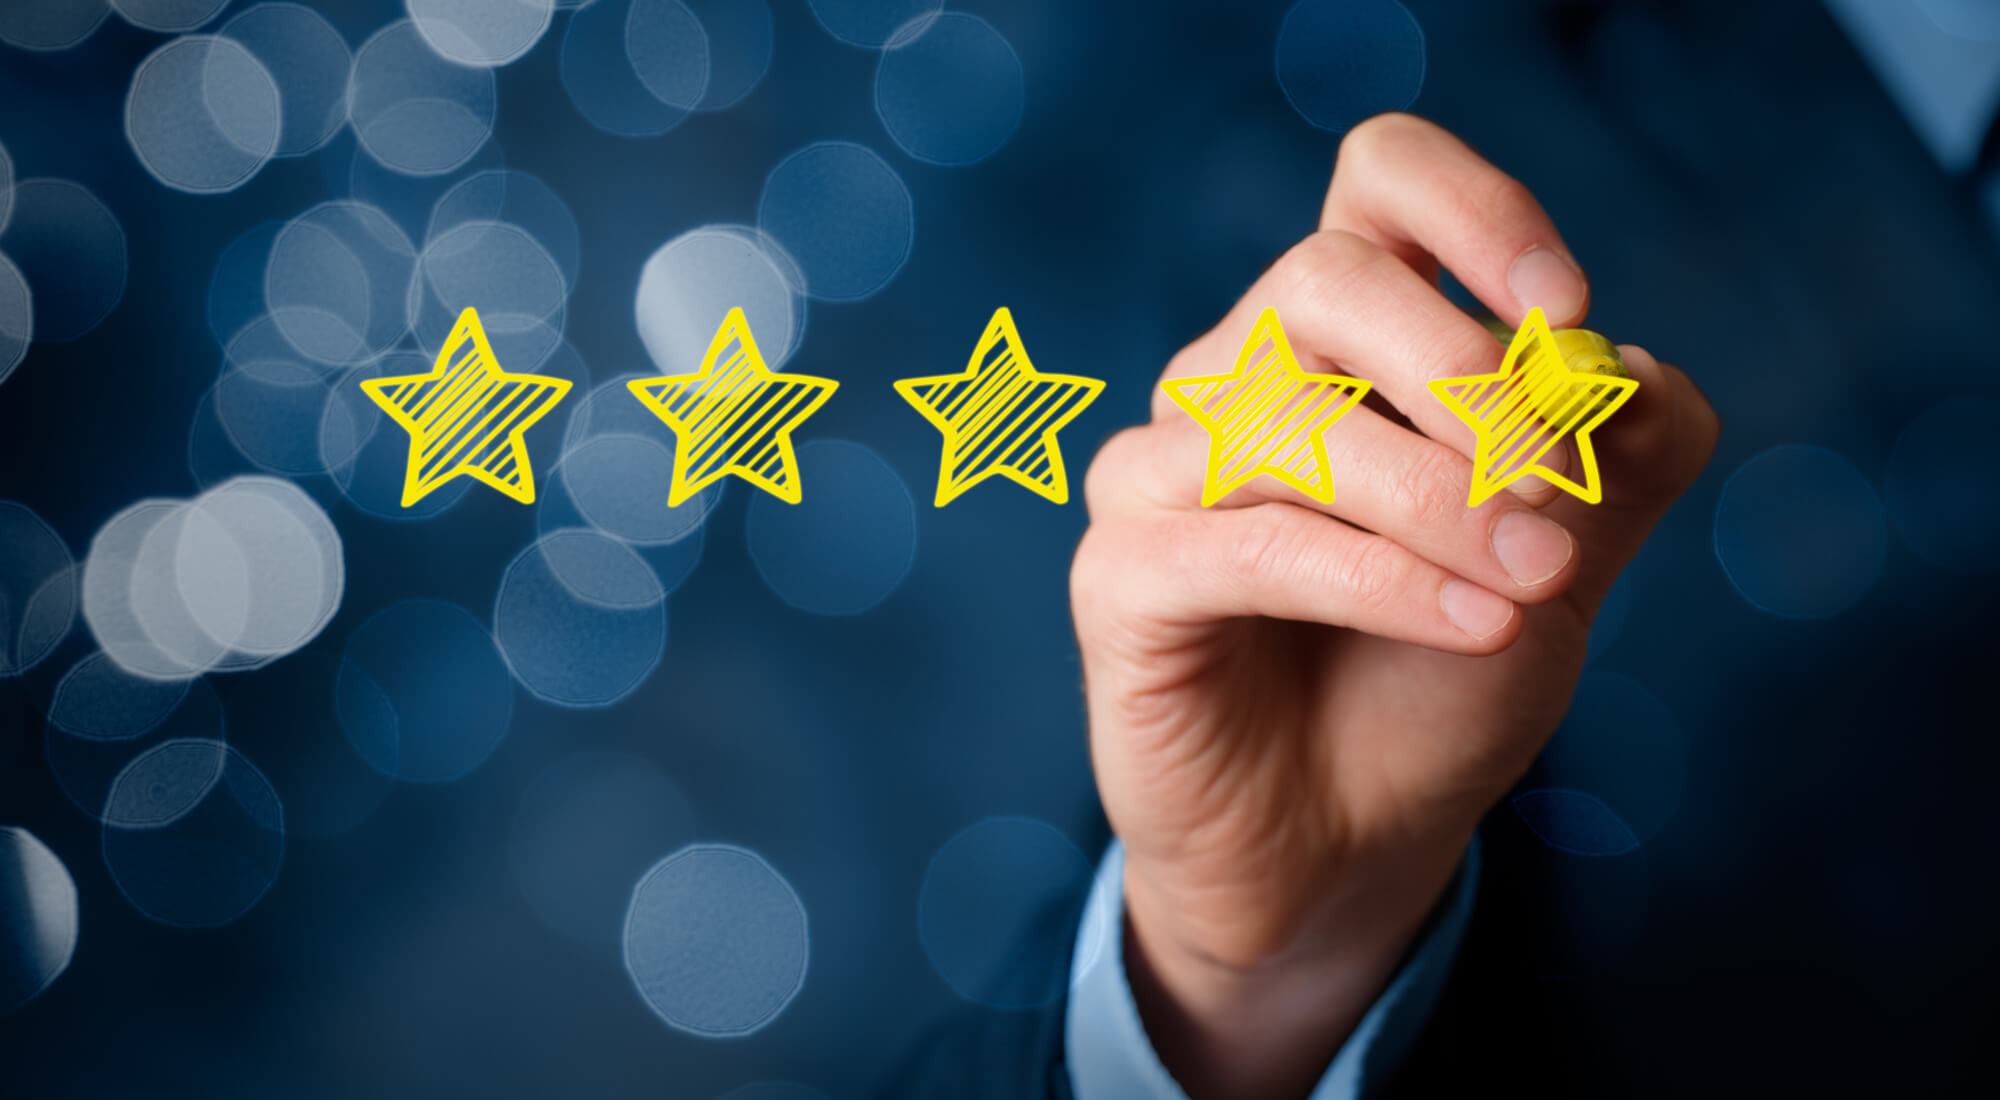 What Do the Financial Experts Say About UXDA's Work?